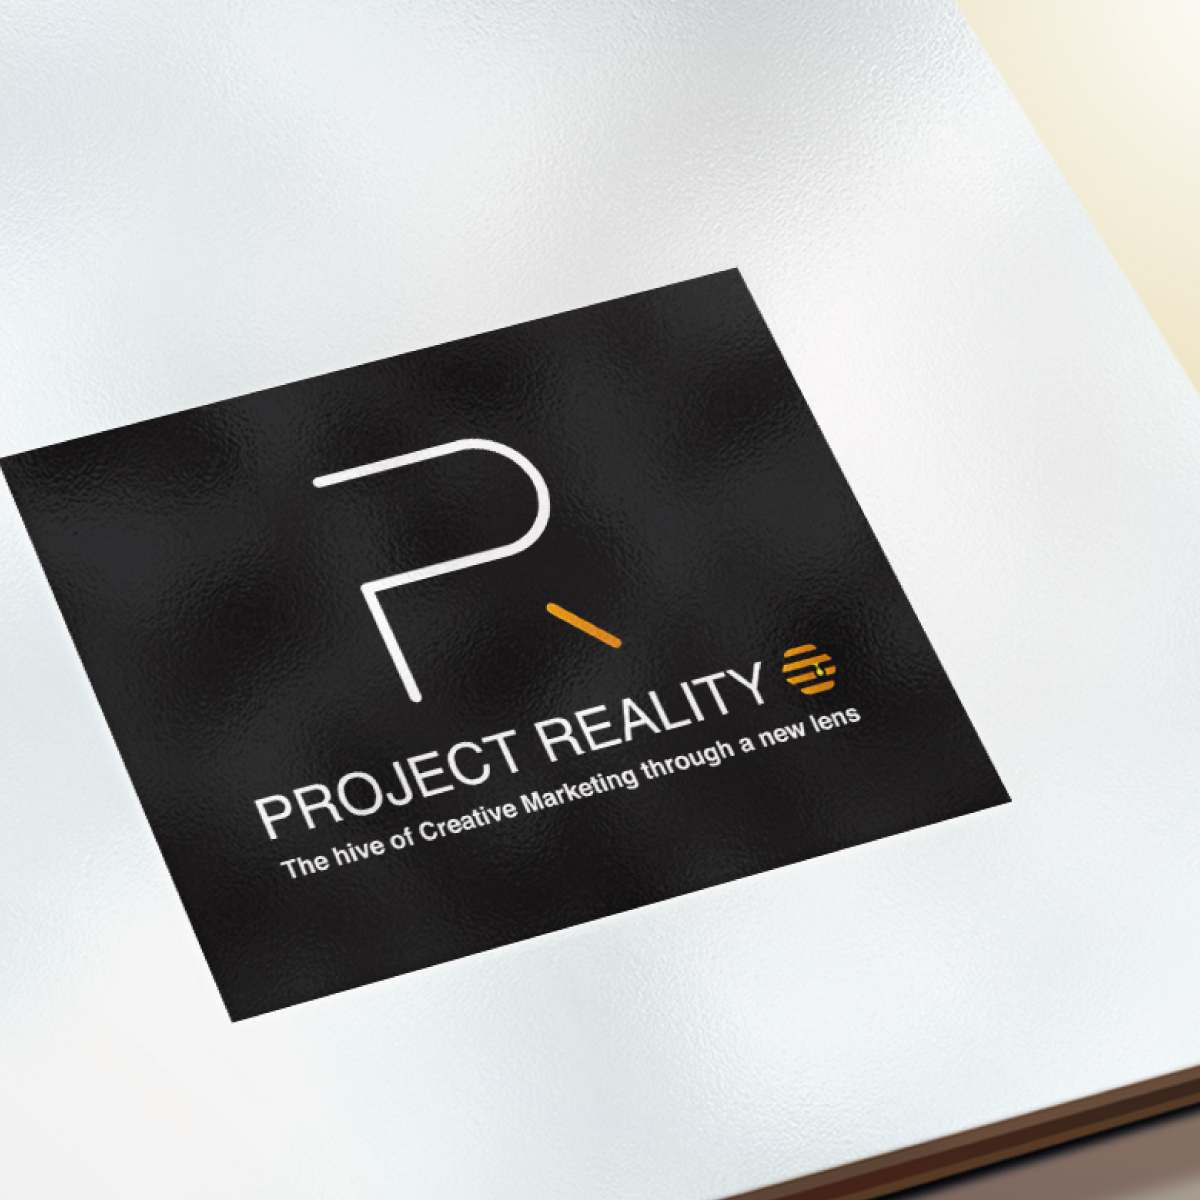 viviane williams consultancy project reality logo design for marketing agency